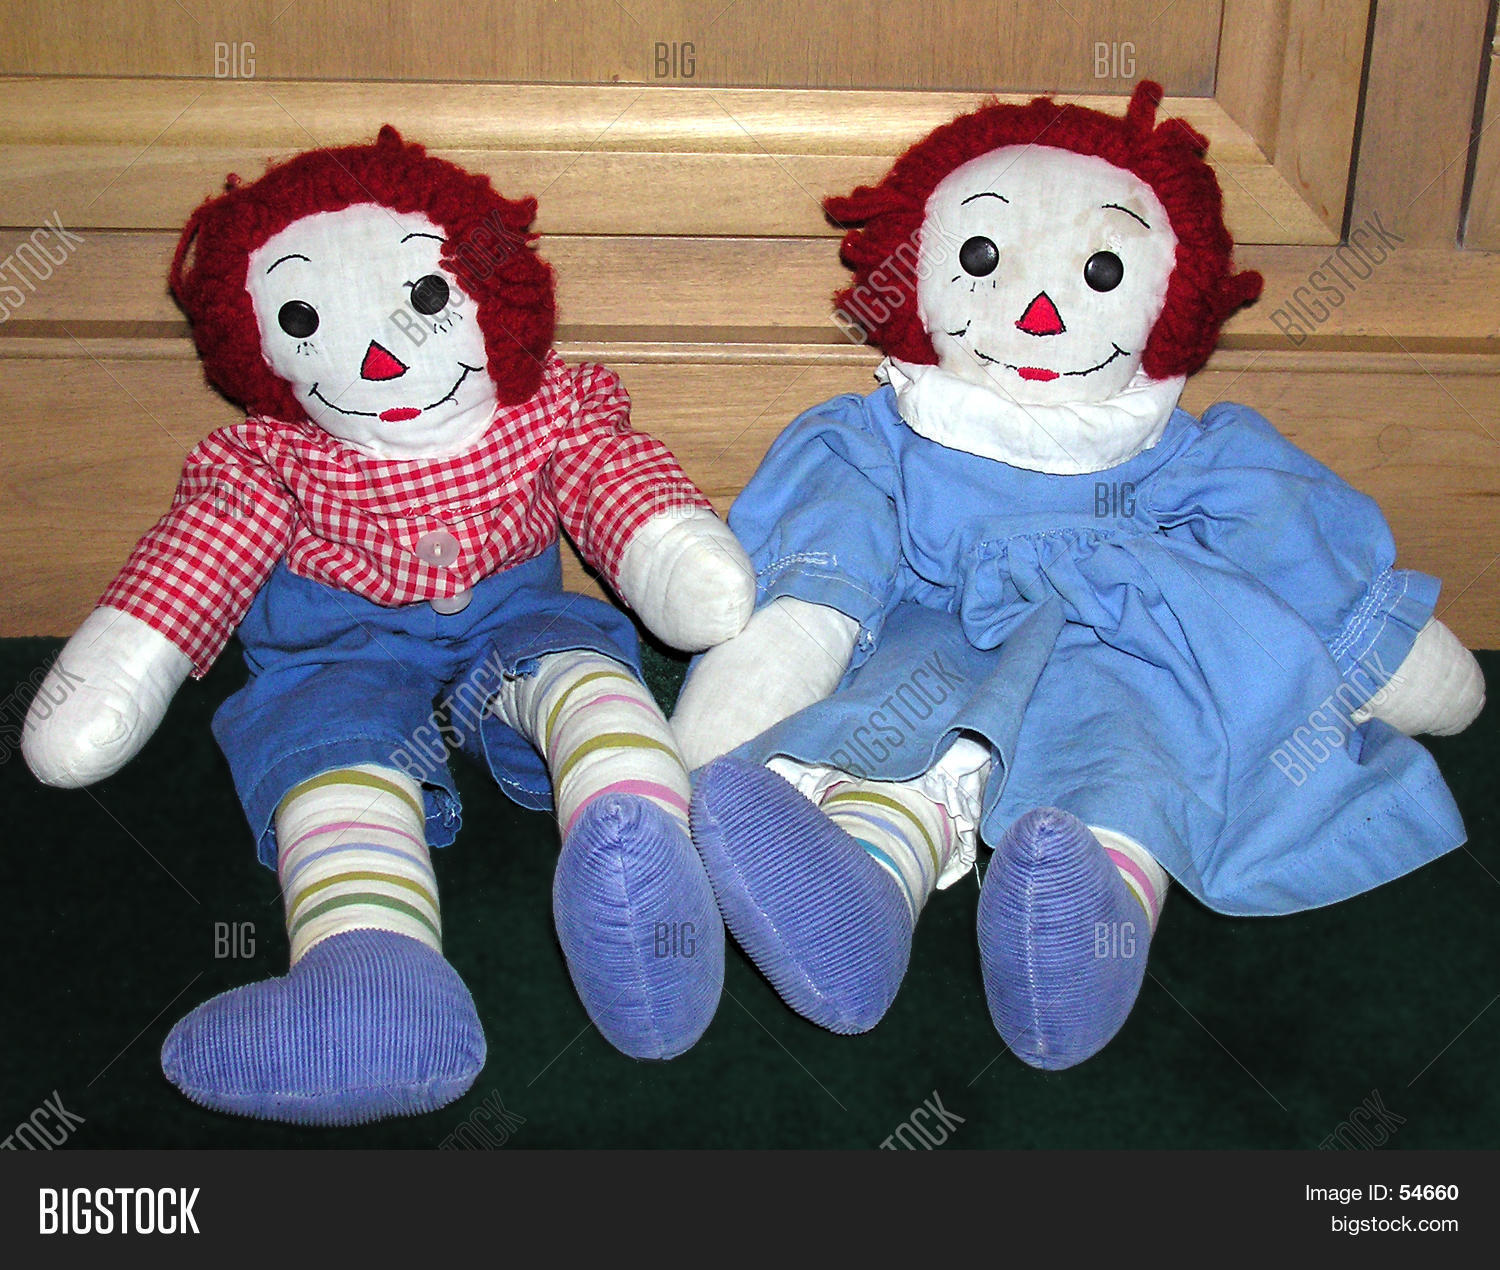 Raggedy Ann Andy Image & Photo (Free Trial) | Bigstock